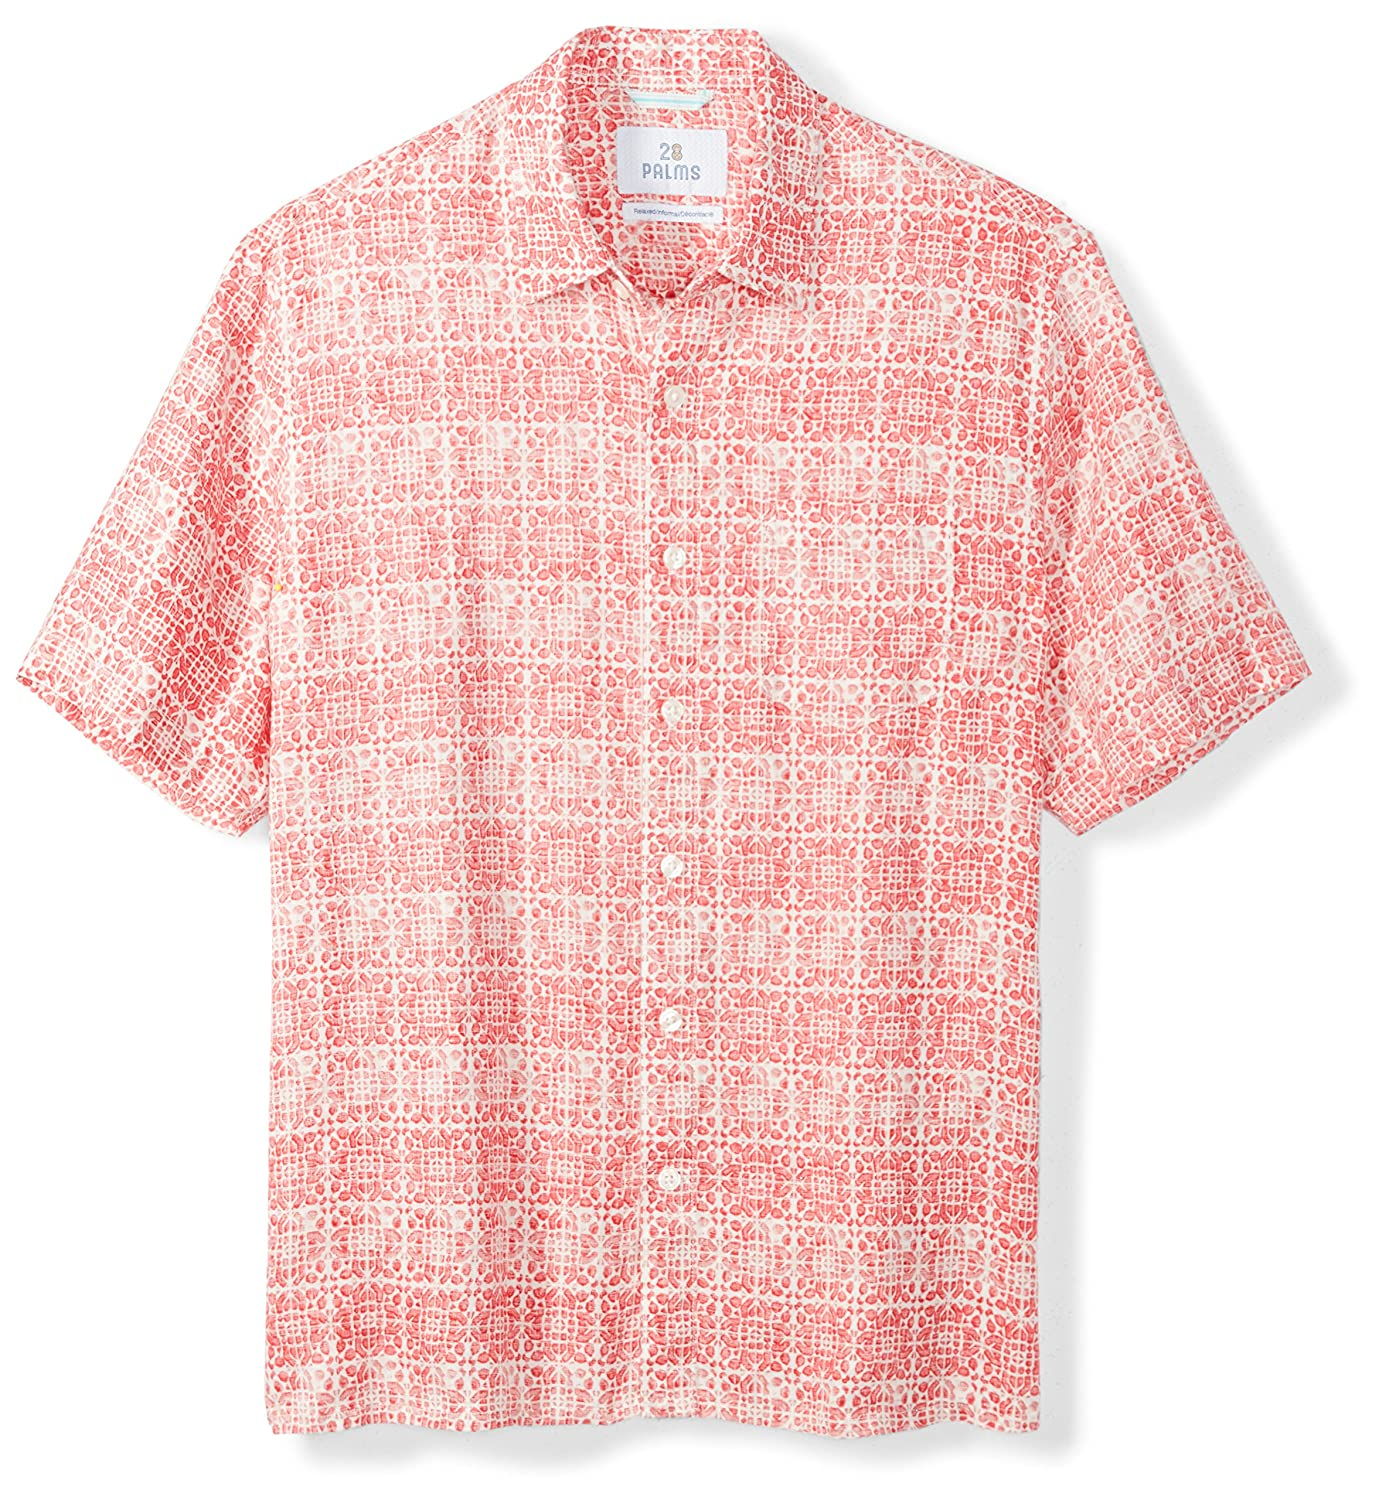 6ff02ef0 Amazon.com: Amazon Brand - 28 Palms Men's Relaxed-Fit 100% Linen Reverse  Print Shirt: Clothing